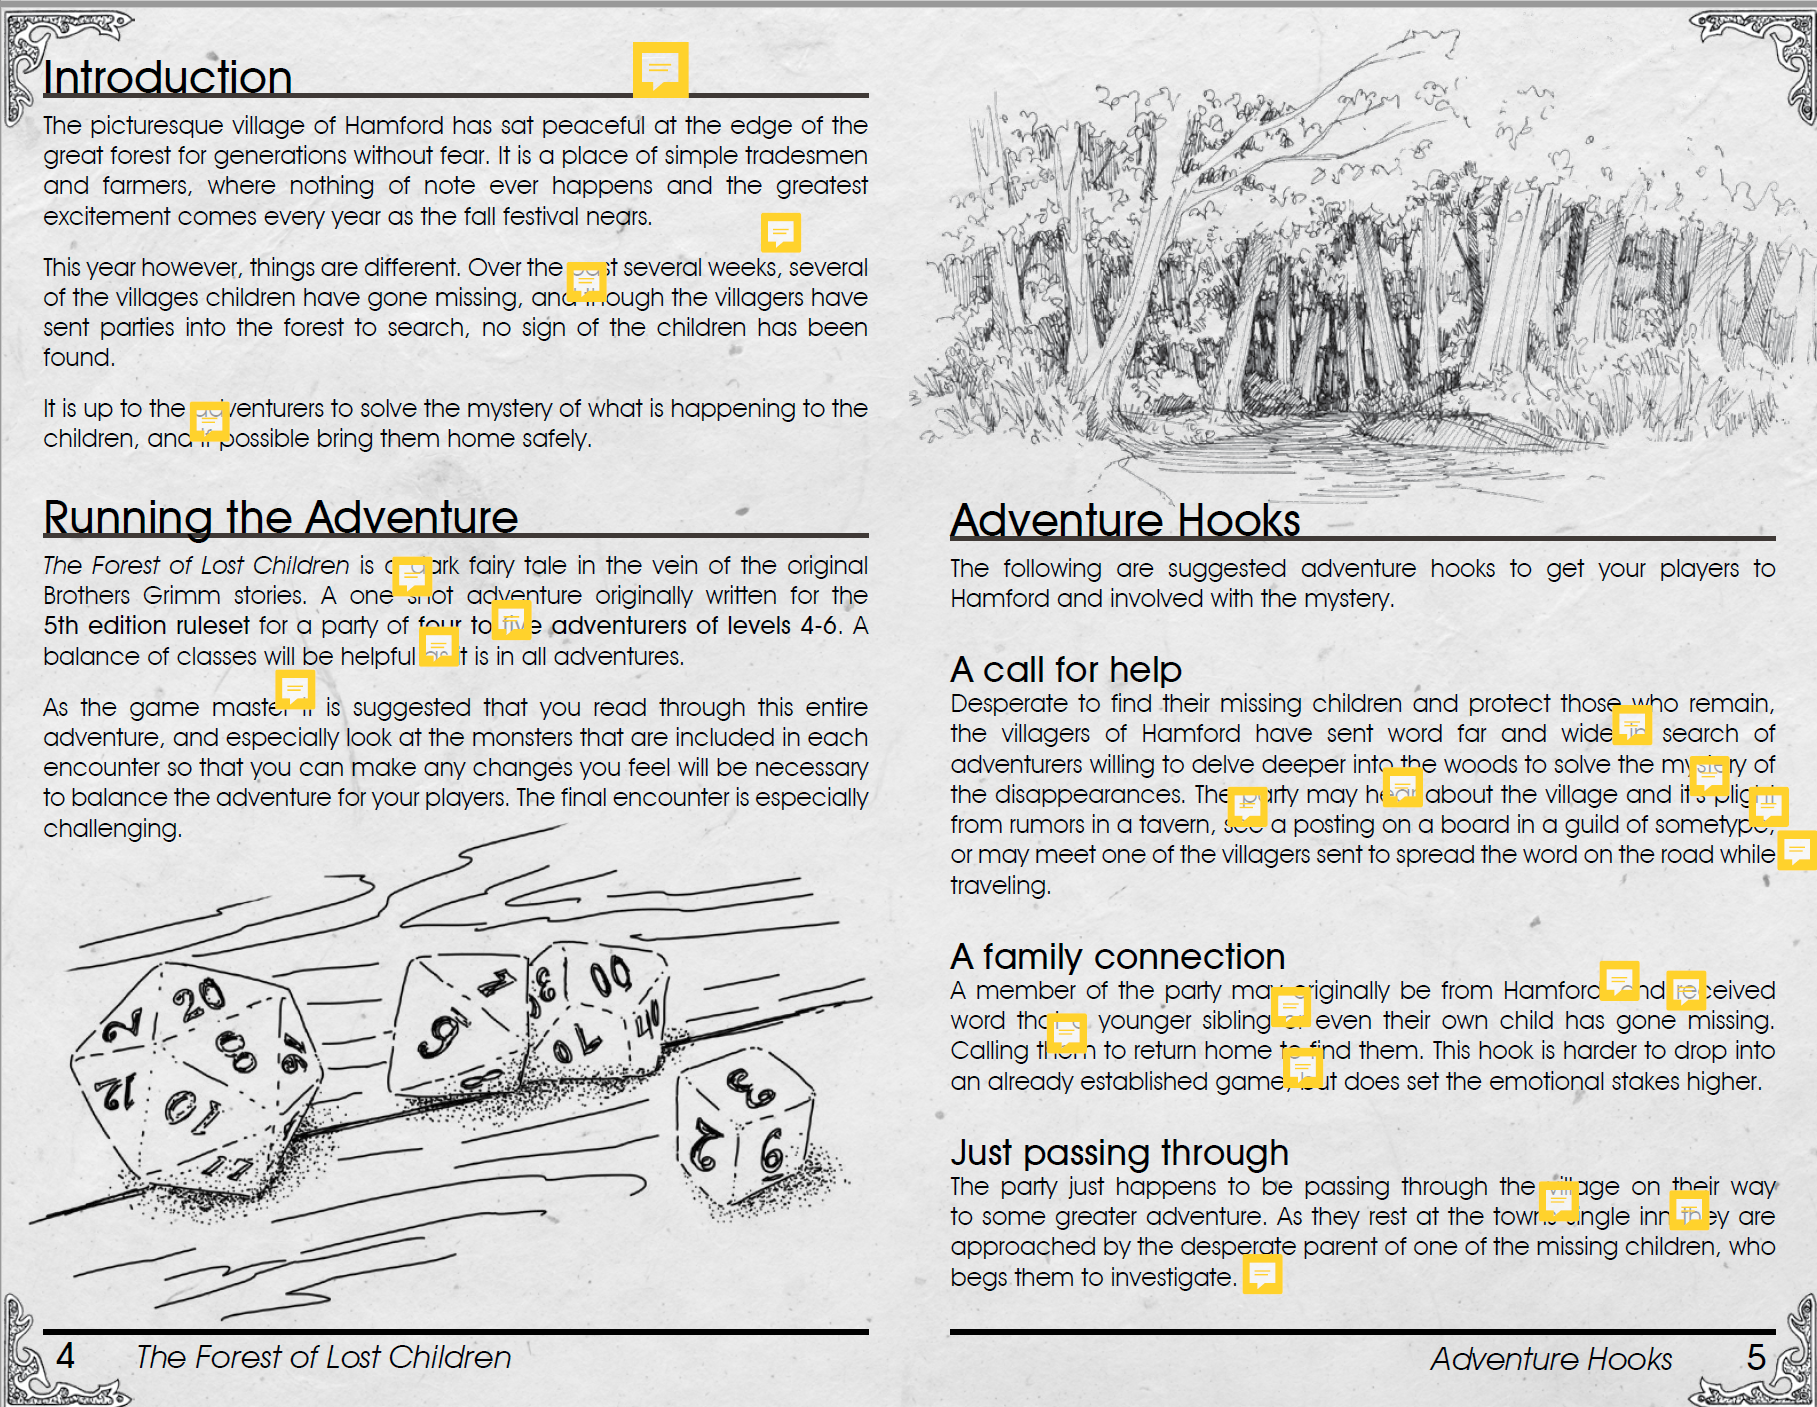 The importance of hiring an editor when producing an rpg zine or any publication.